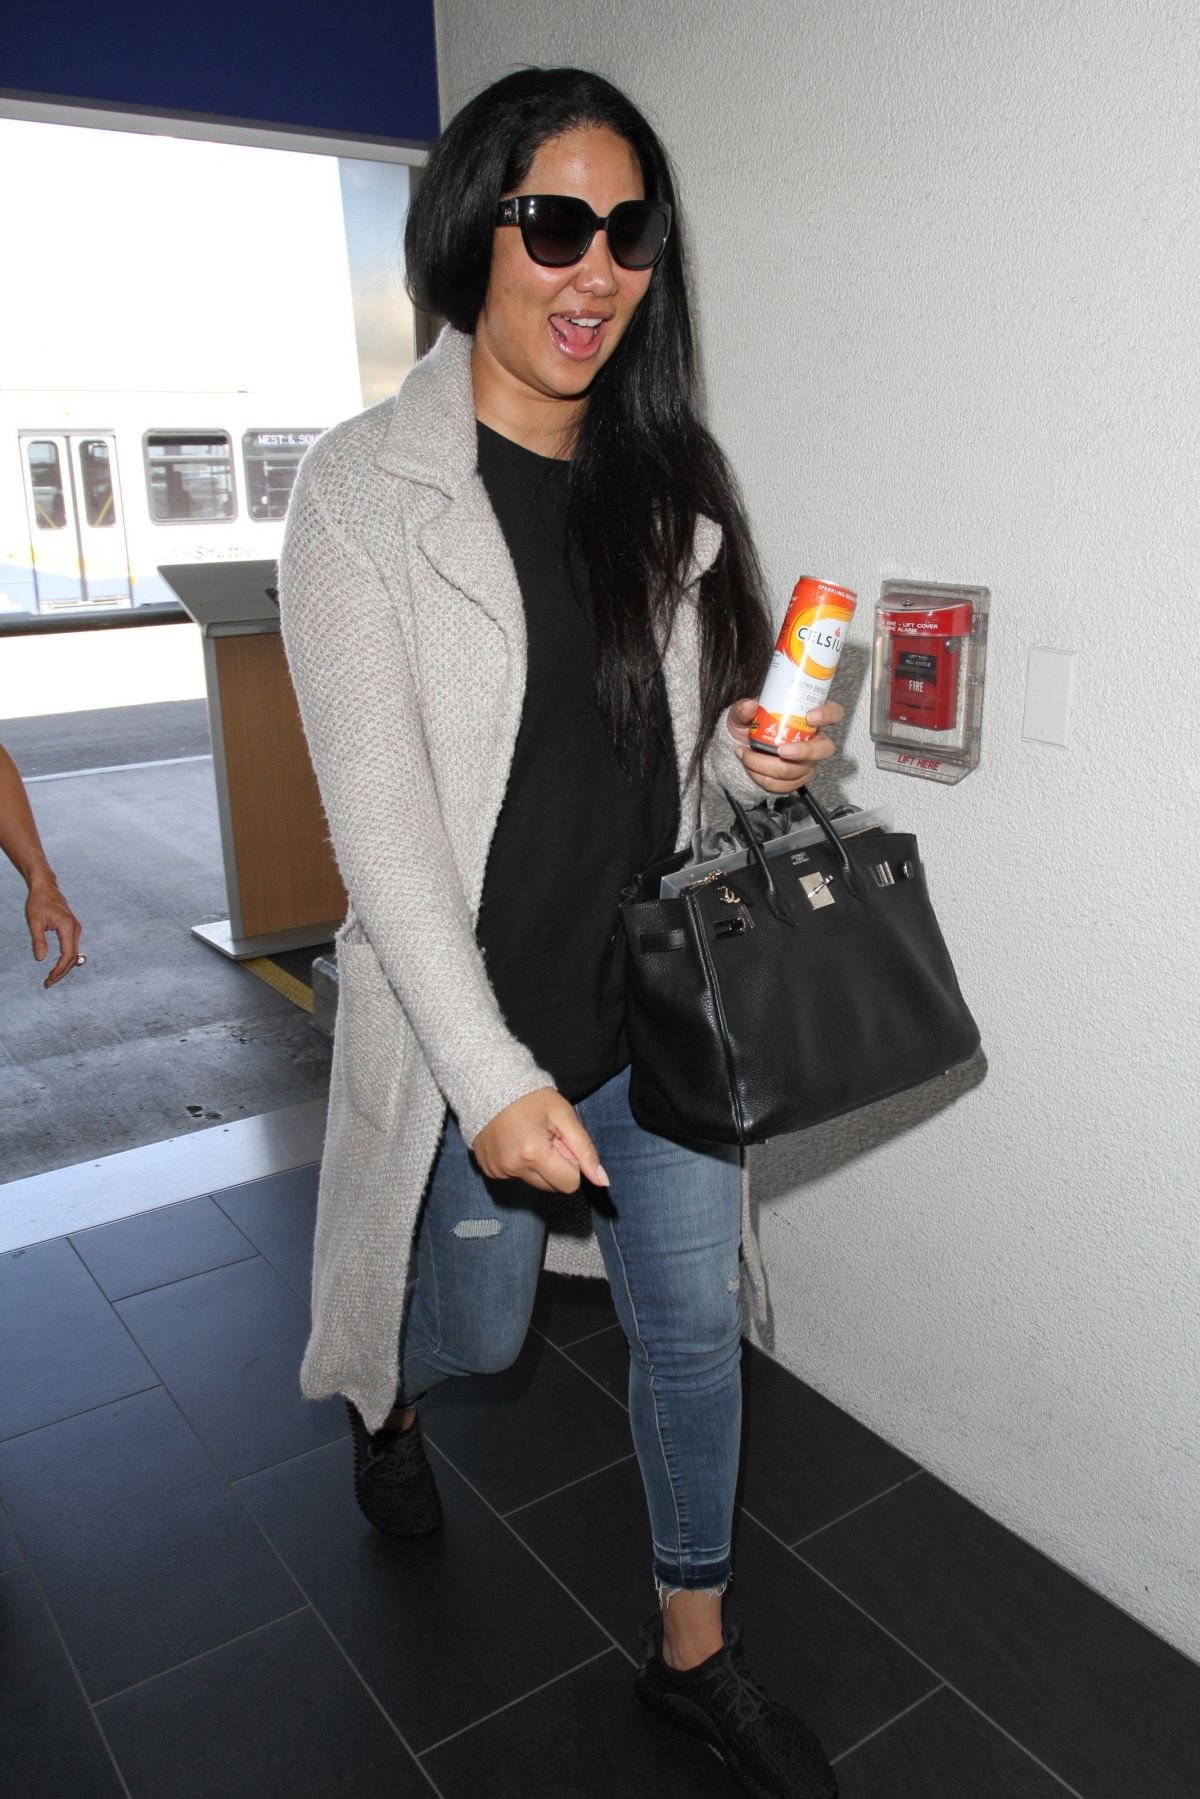 KIMORA LEE SIMMONS at LAX Airport in Los Angeles 03/09 ...